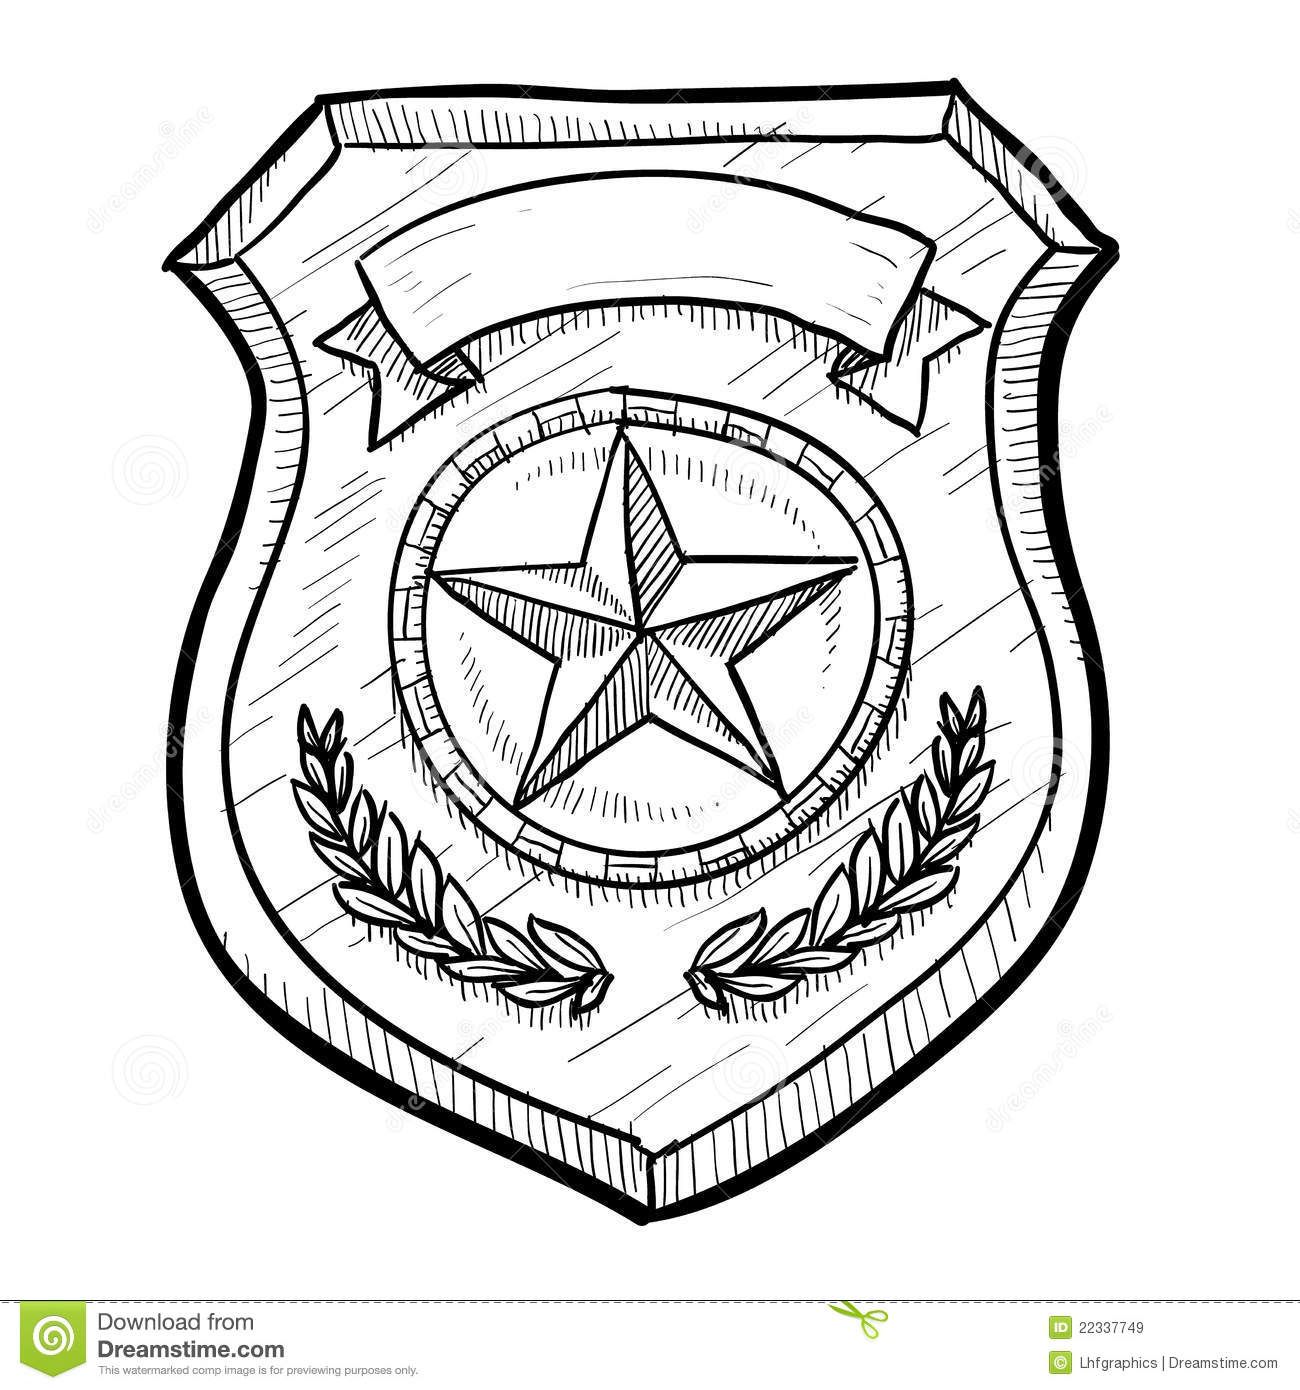 police or security badge sketch stock vector illustration of cops